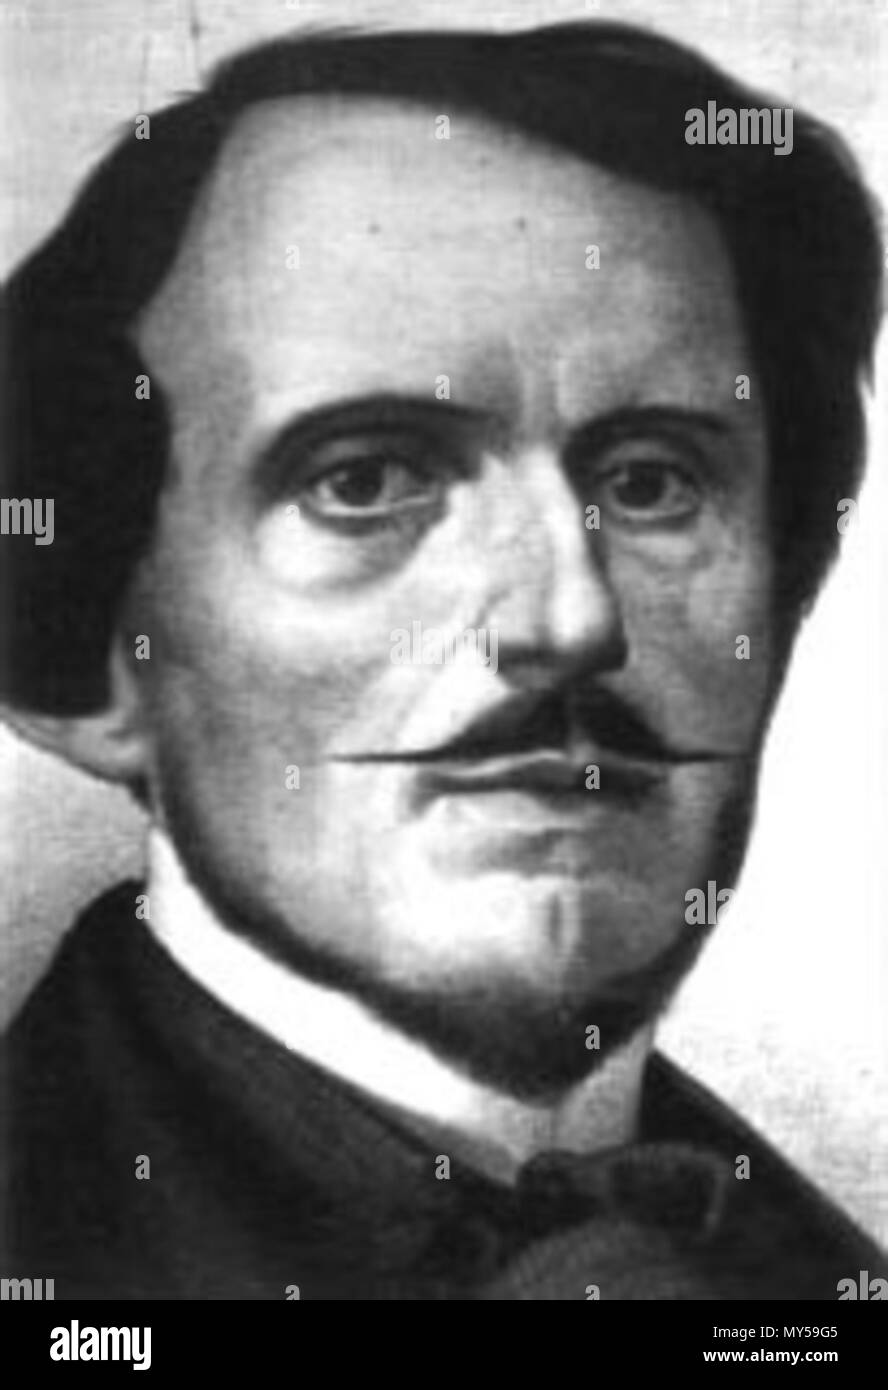 . Italiano: Immagine dello statista è:Bettino Ricasoli (1809-1880). 8 maggio 2004 (originale data di caricamento). Uploader originale era due volte25 a it.wikipedia 73 Bettino Ricasoli Immagini Stock